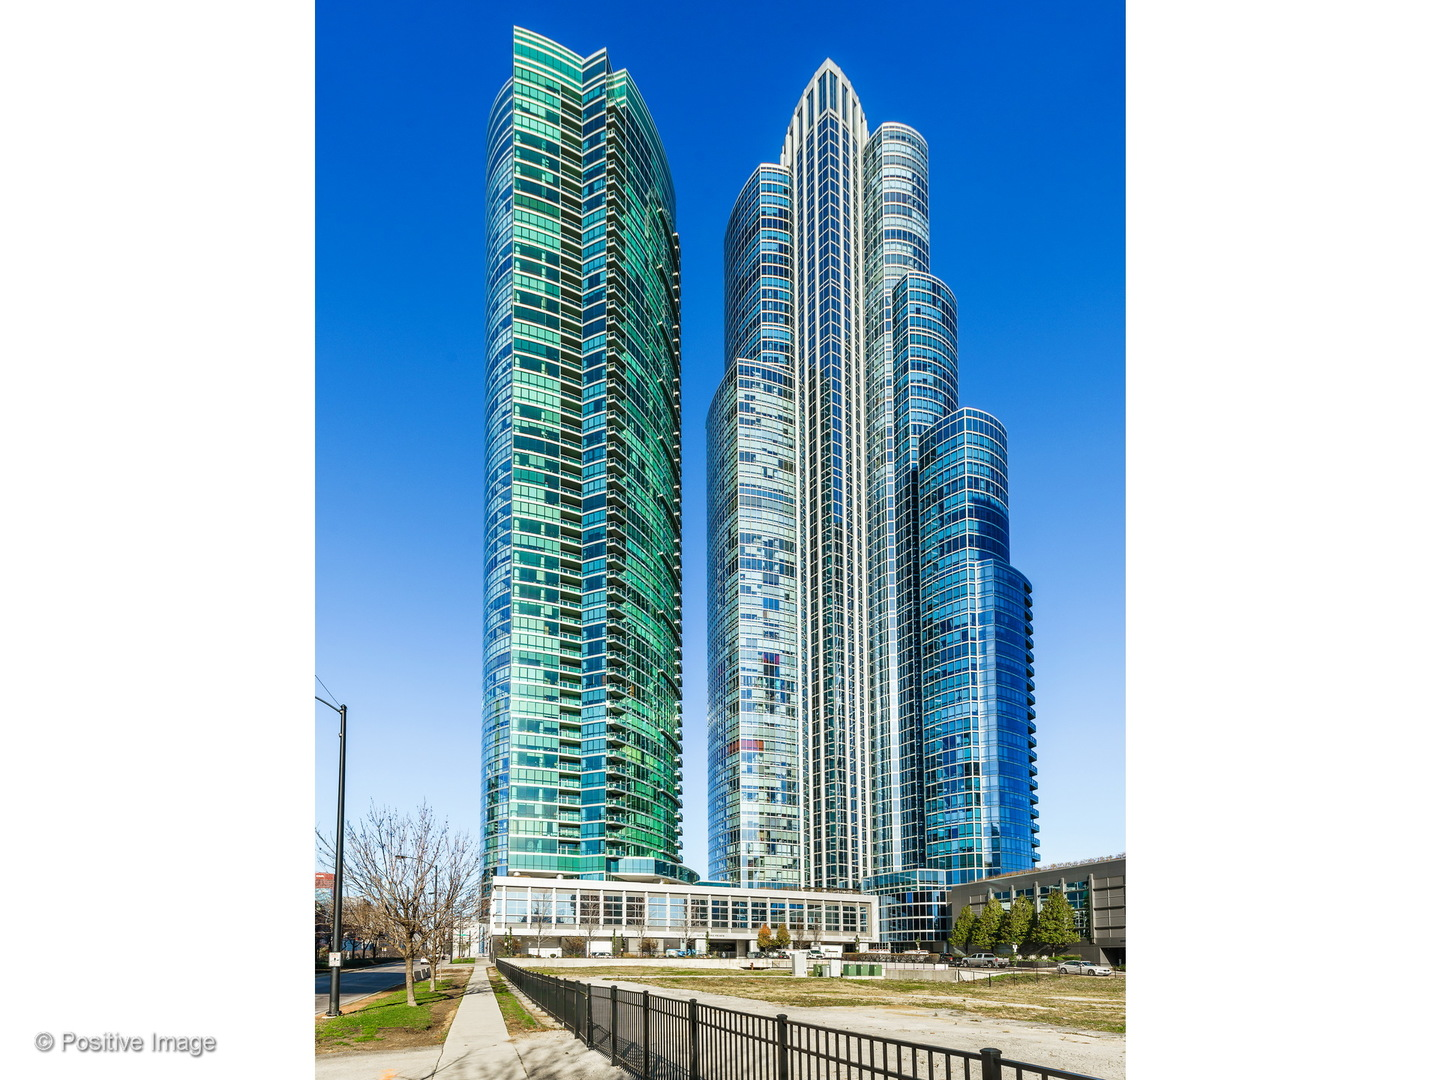 3 Condo in Near South Side